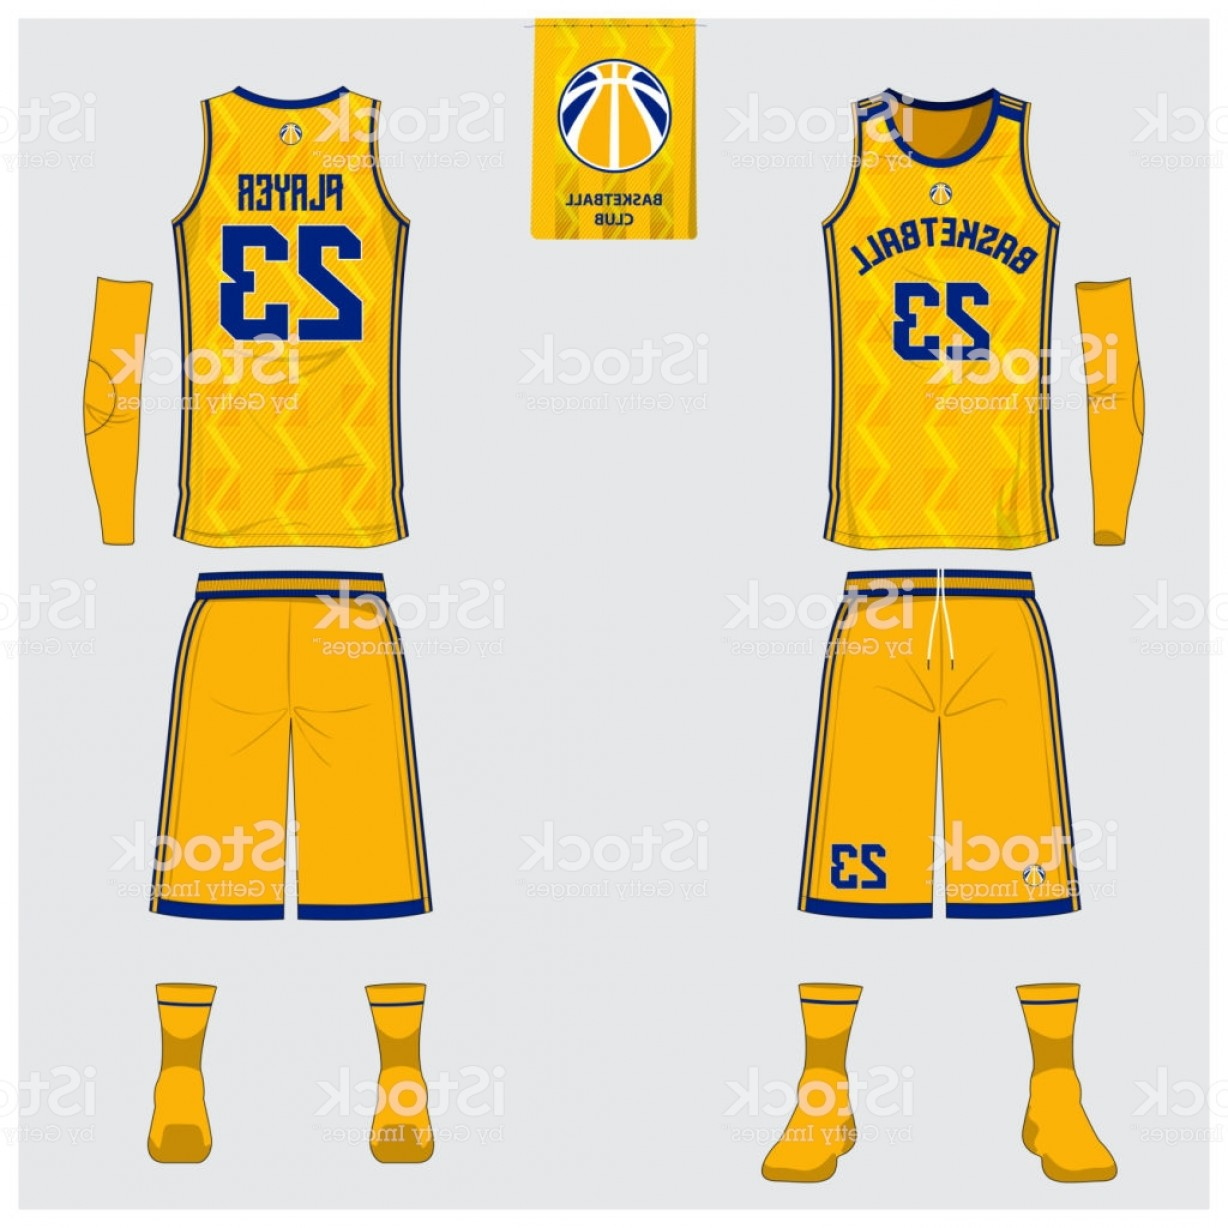 Best Tank Top Vector: Yellow Basketball Jersey Or Sport Uniform Template Design For Basketball Club Front Gm